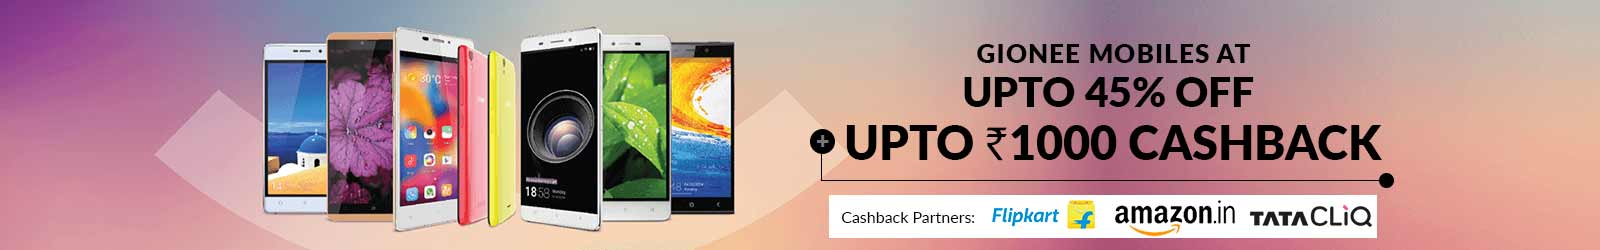 Gionee Mobile Price List India: 45% Off Offers on All Gionee